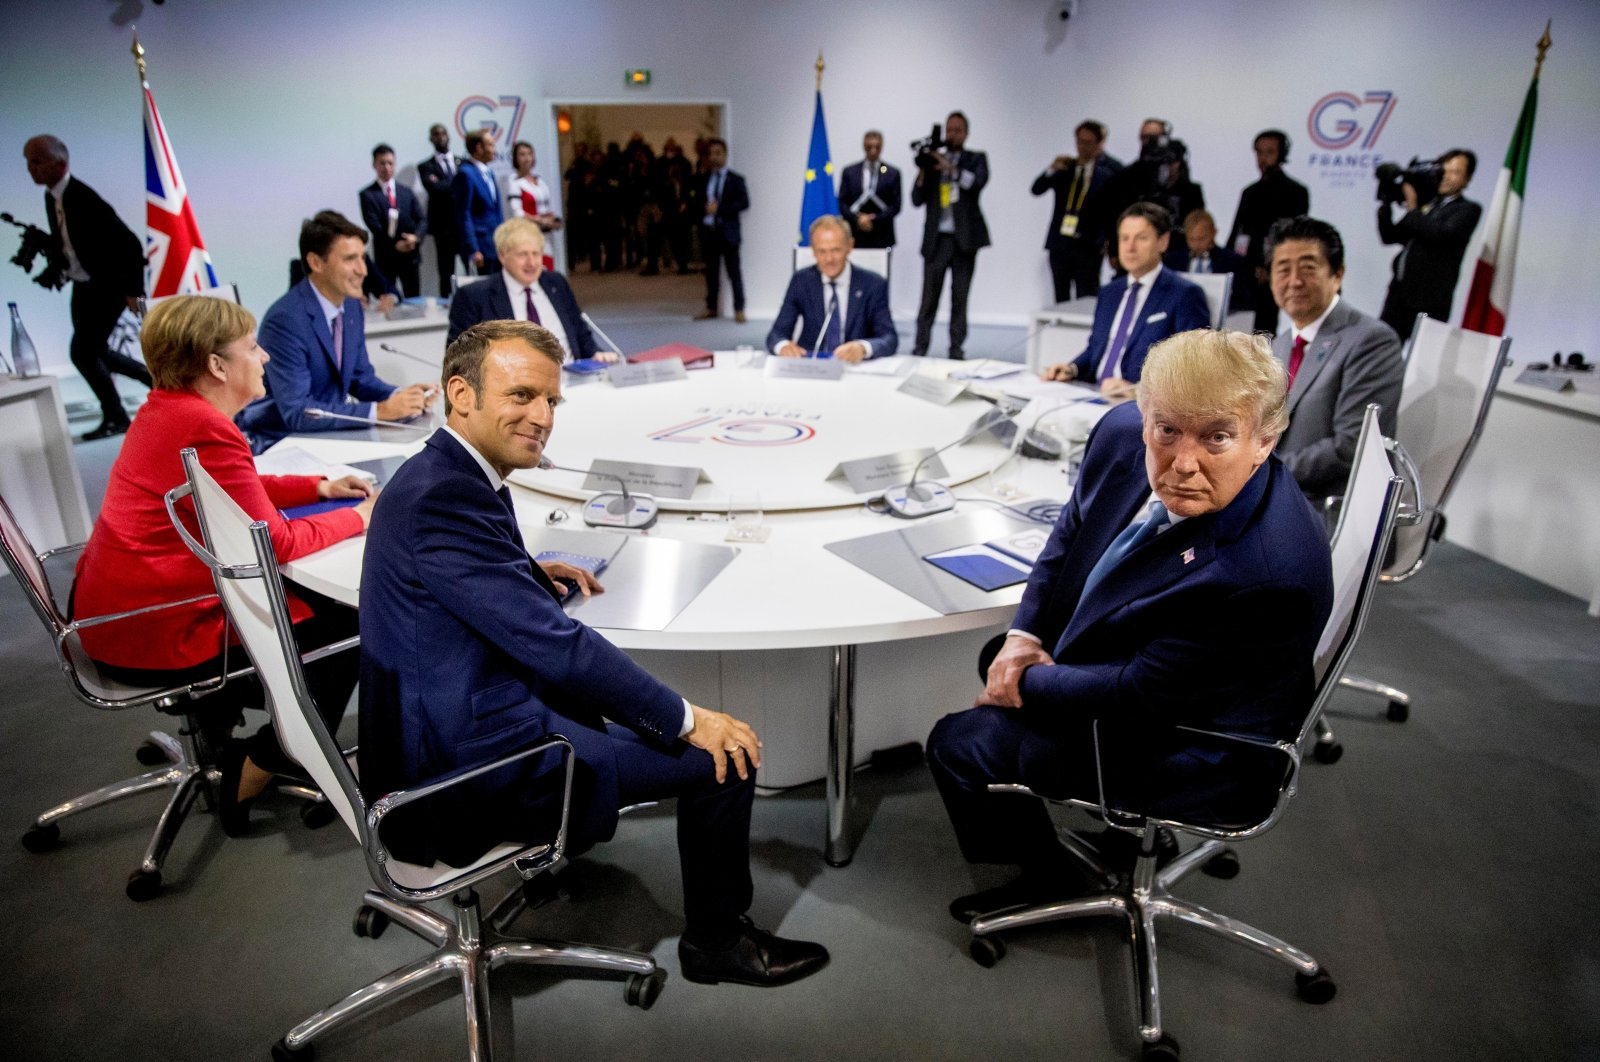 Leaders of G-7 countries participate in a working session on the global economy, foreign policy and security affairs at the G-7 Summit in Biarritz, France, Aug. 25, 2019. (Reuters Photo)